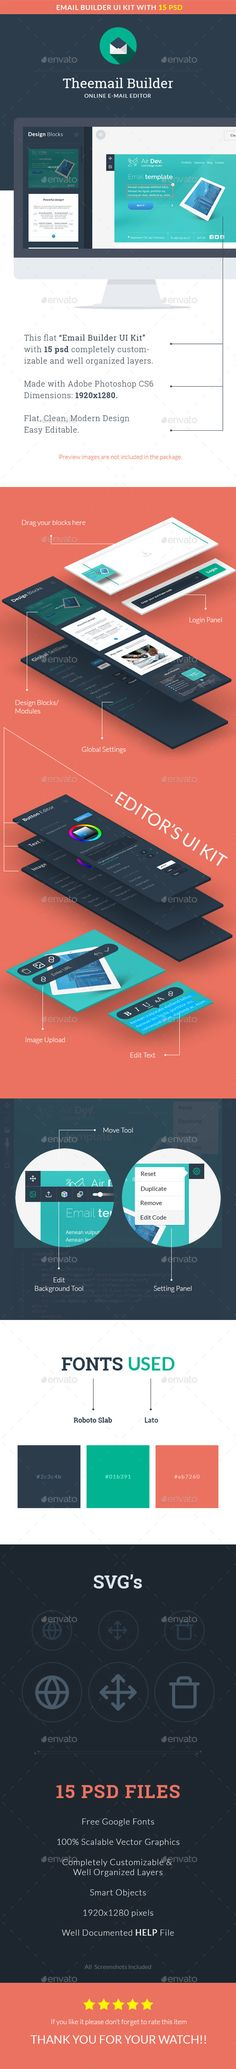 Theemail Builder (User Interfaces)